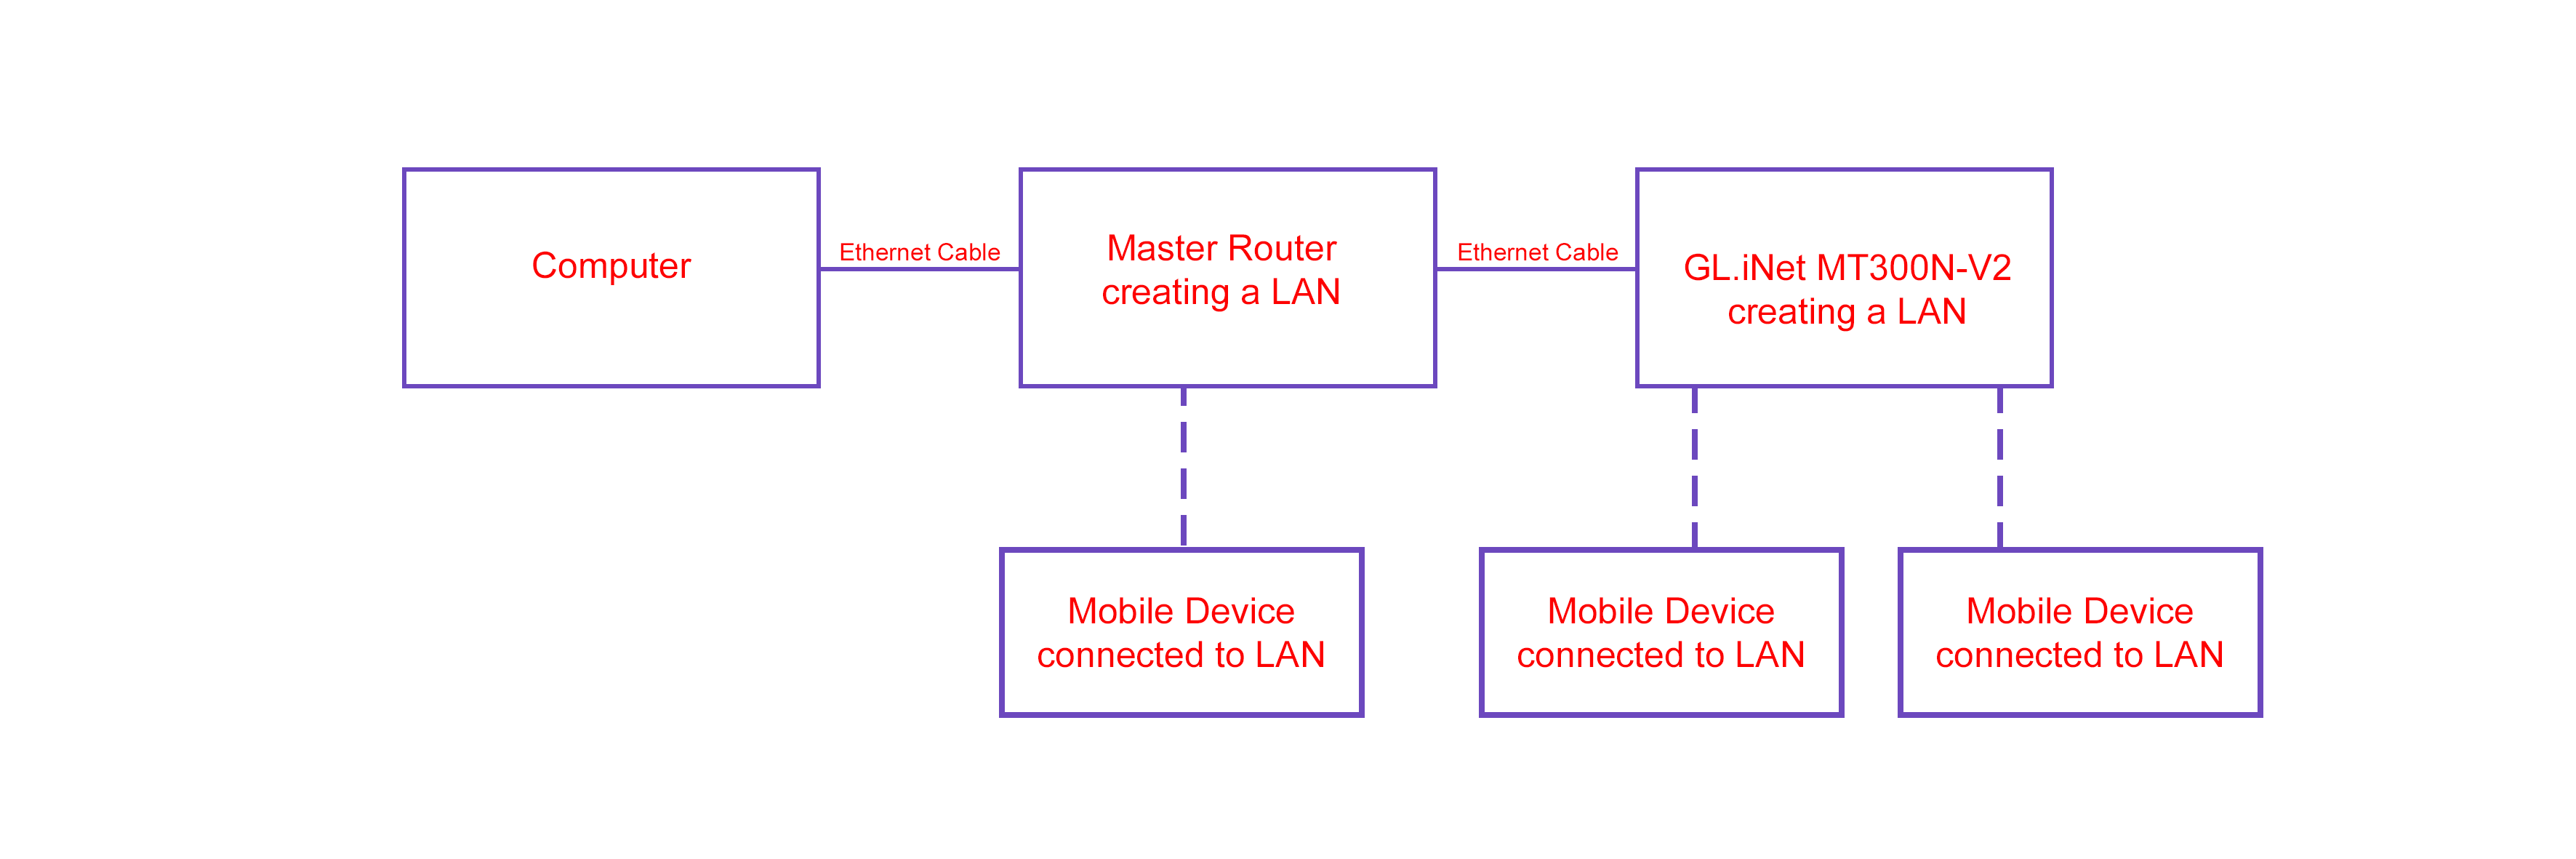 Using Mt300n V2 To Create A Wired Network General Glinet Ethernet Lan Diagram We Want Do This So Can Connect Mobile Devices The Computer Via When Are Connected Either Master Router Or Gl